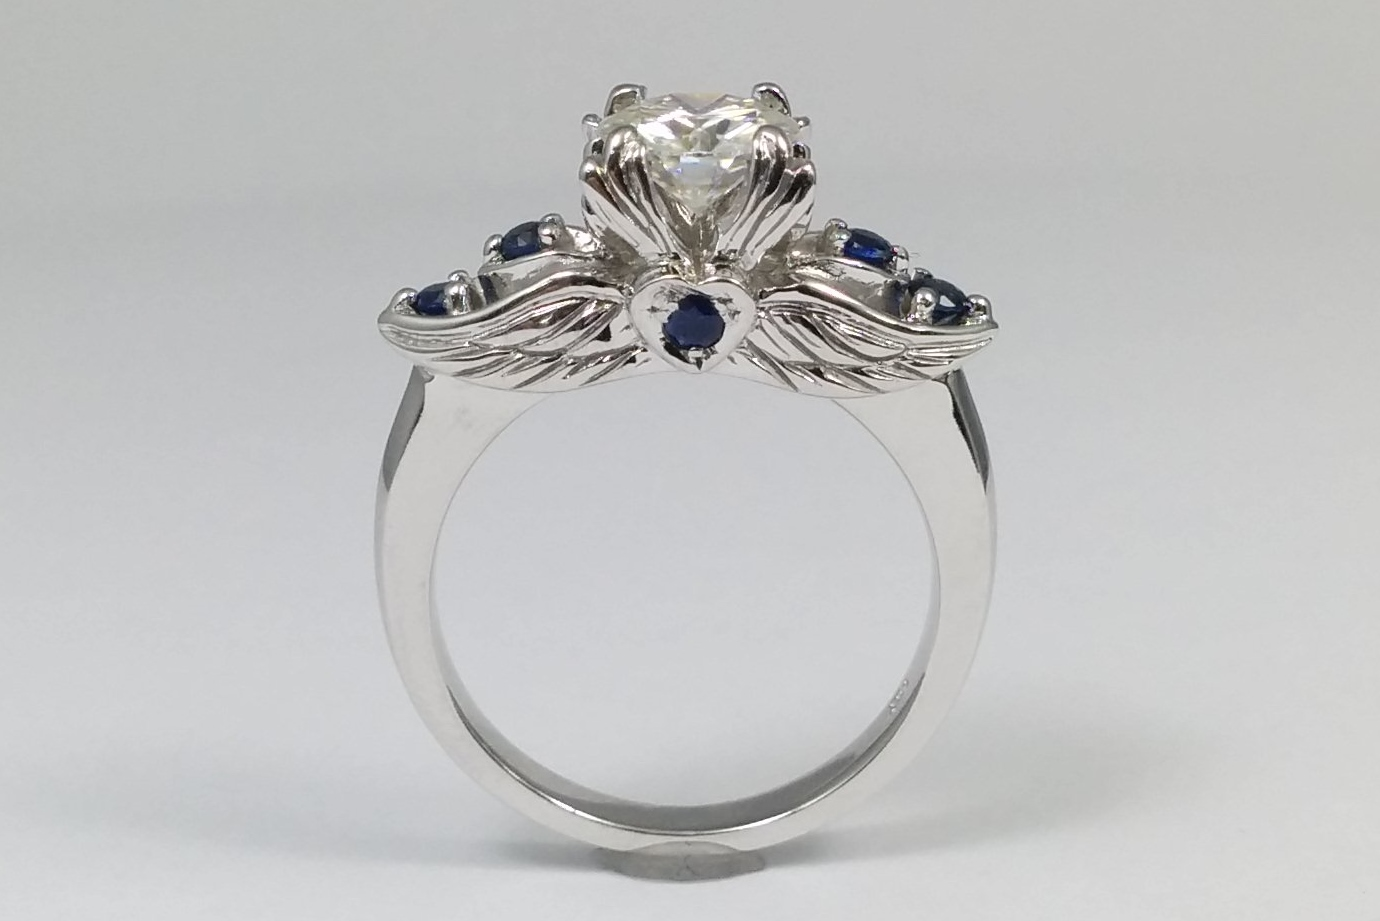 Engagement Ring Sapphires & Engraved Wings Engagement. Modest Celebrity Rings. Innovative Wedding Wedding Rings. 3 Band Engagement Rings. Meteor Wedding Rings. Tiffany Diamond Engagement Rings. Tapered Engagement Rings. Bead Rings. Notebook Rings